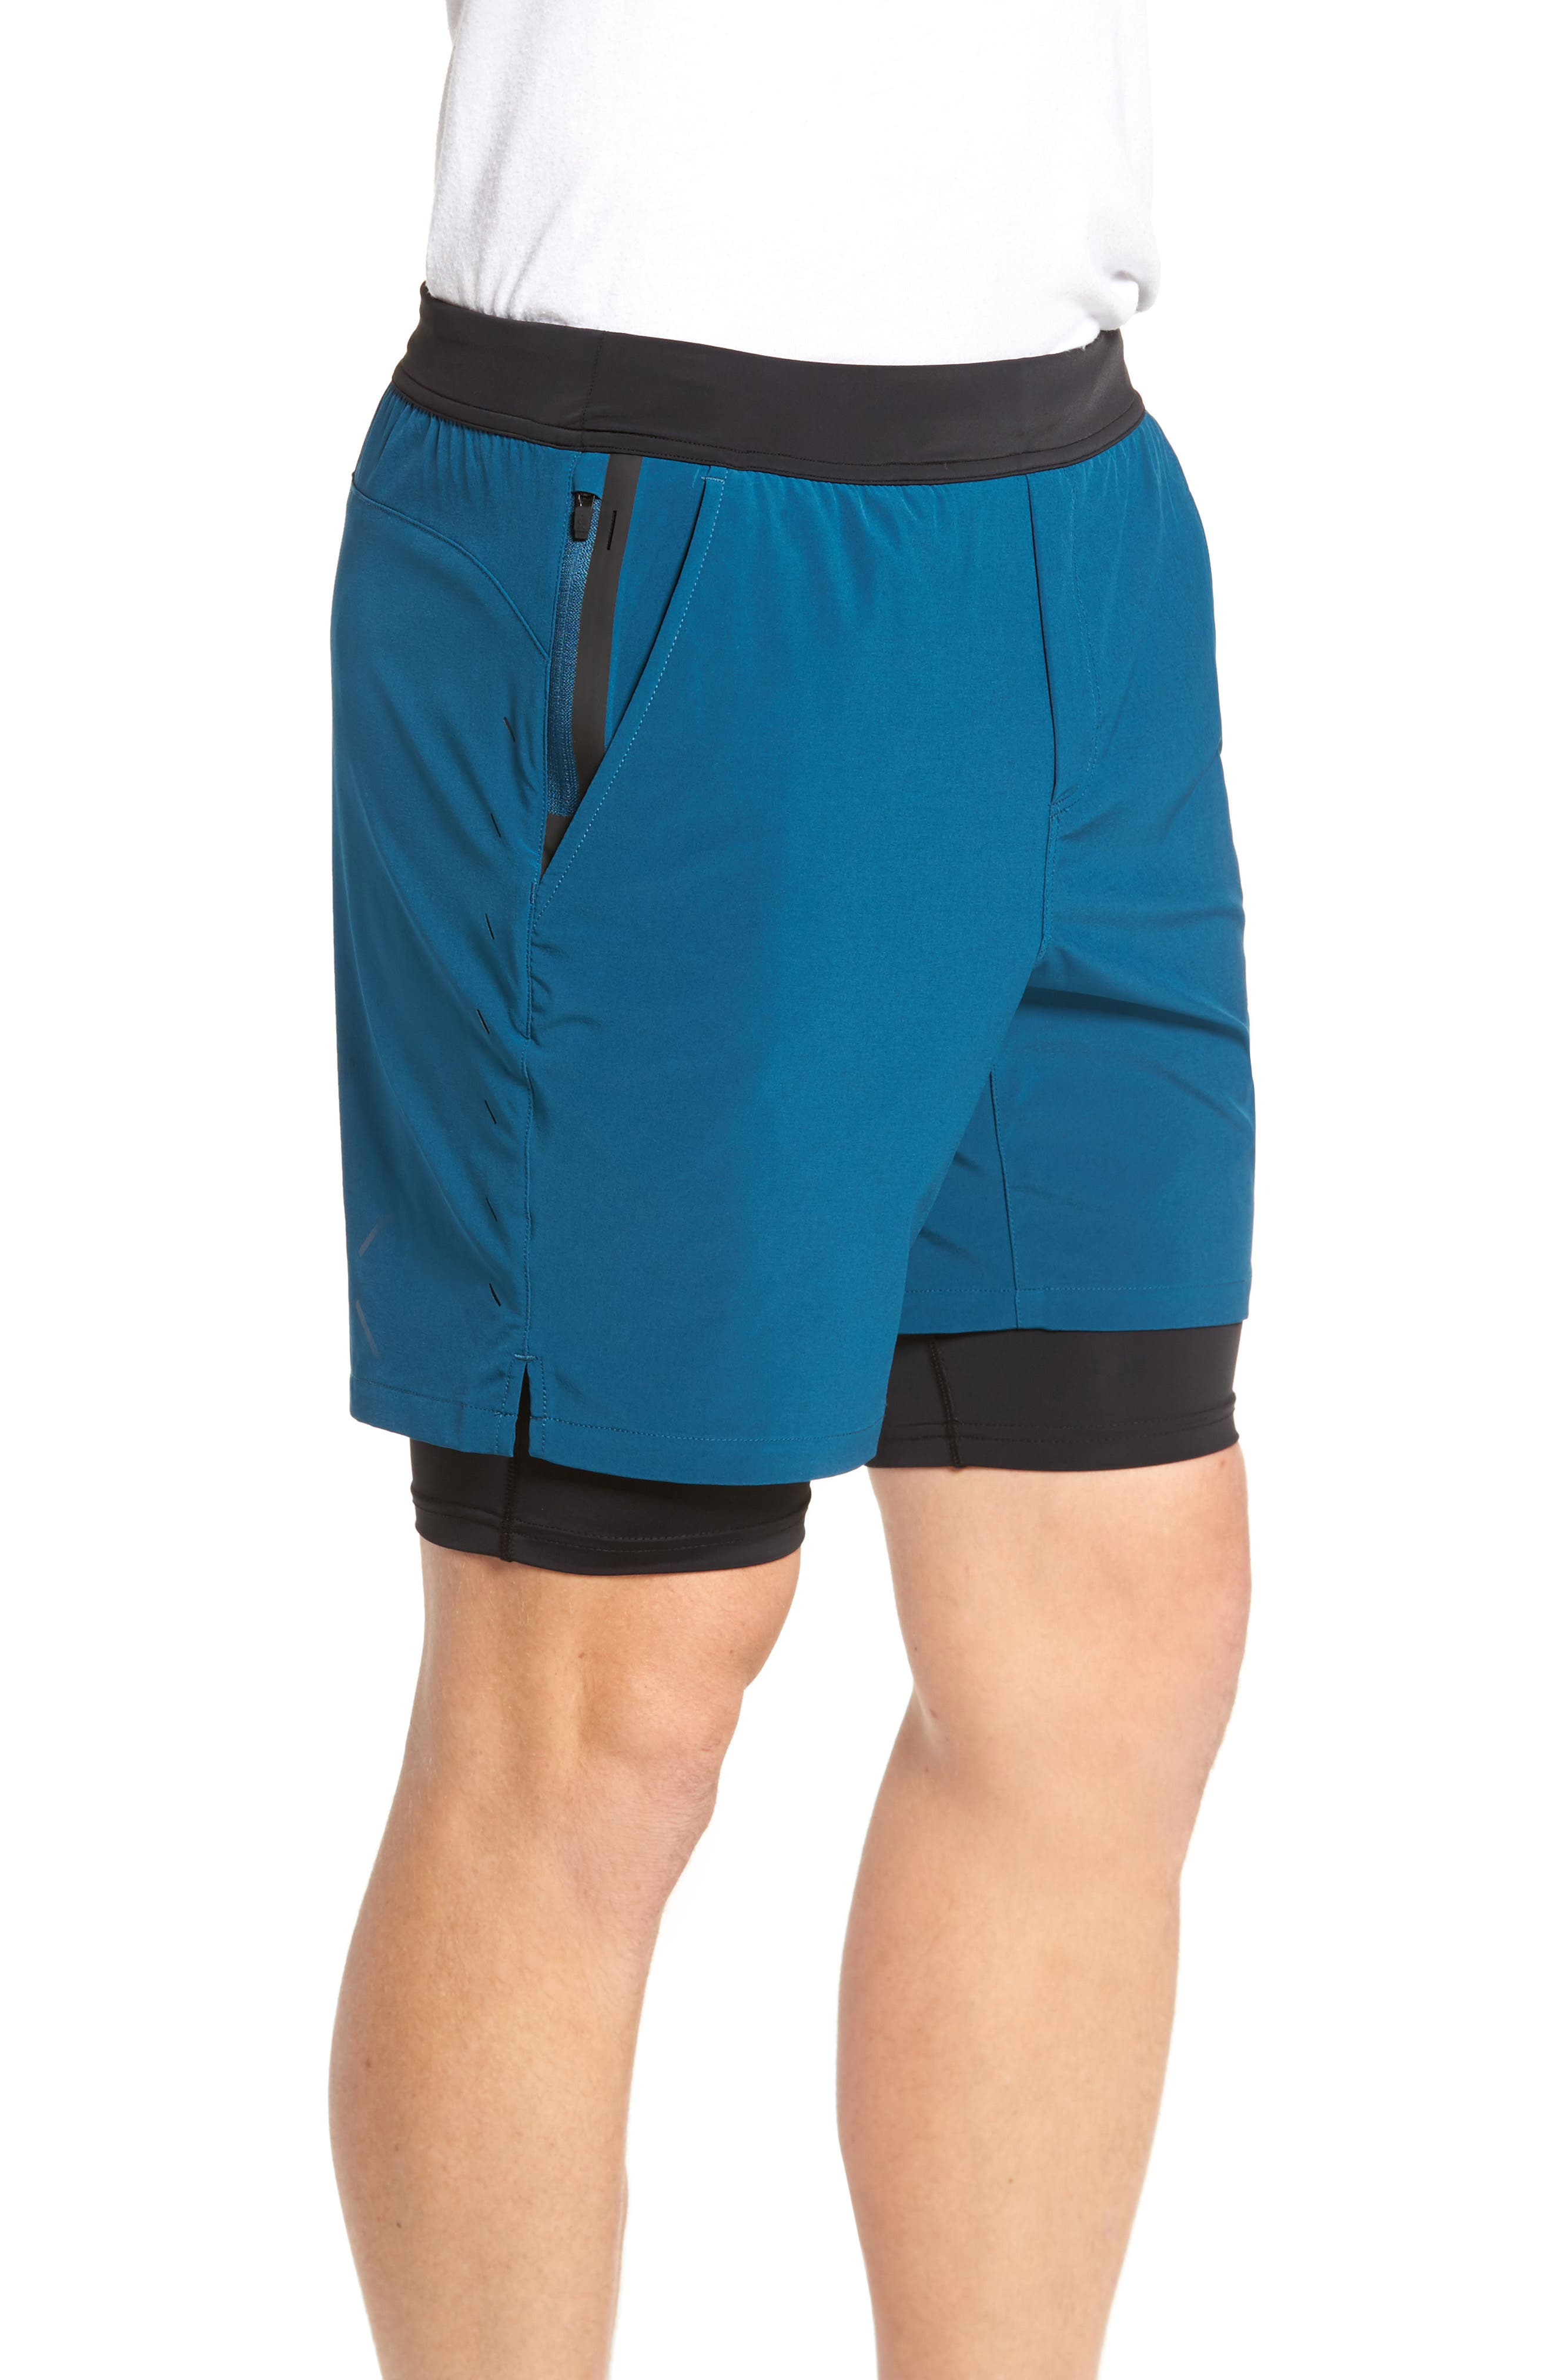 Interval Athletic Shorts,                             Alternate thumbnail 3, color,                             Dark Teal